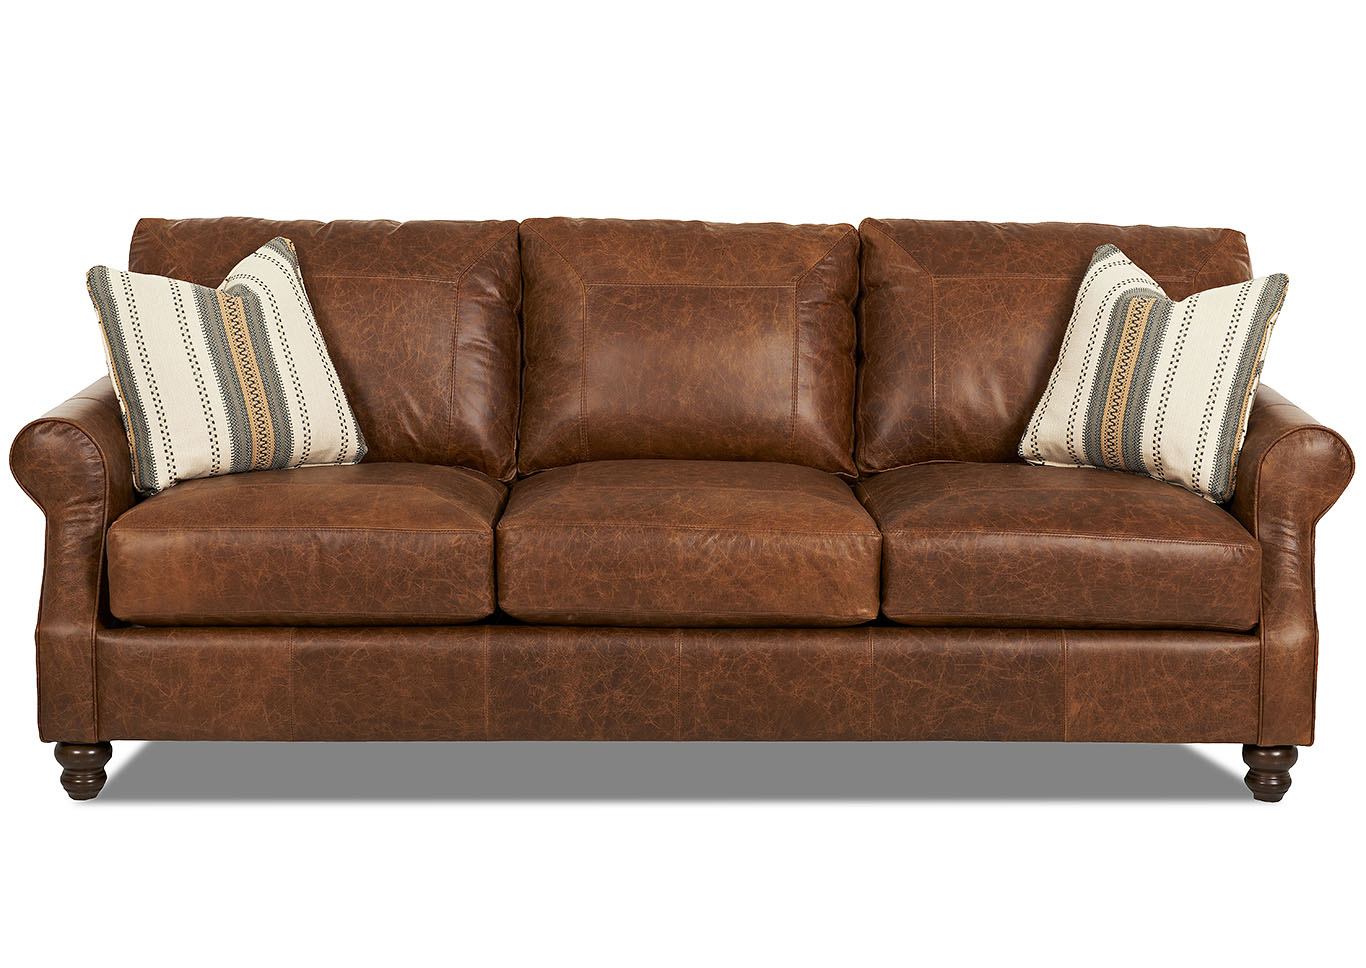 Hornell Furniture Outlet Tifton Brown Stationary Leather Sofa